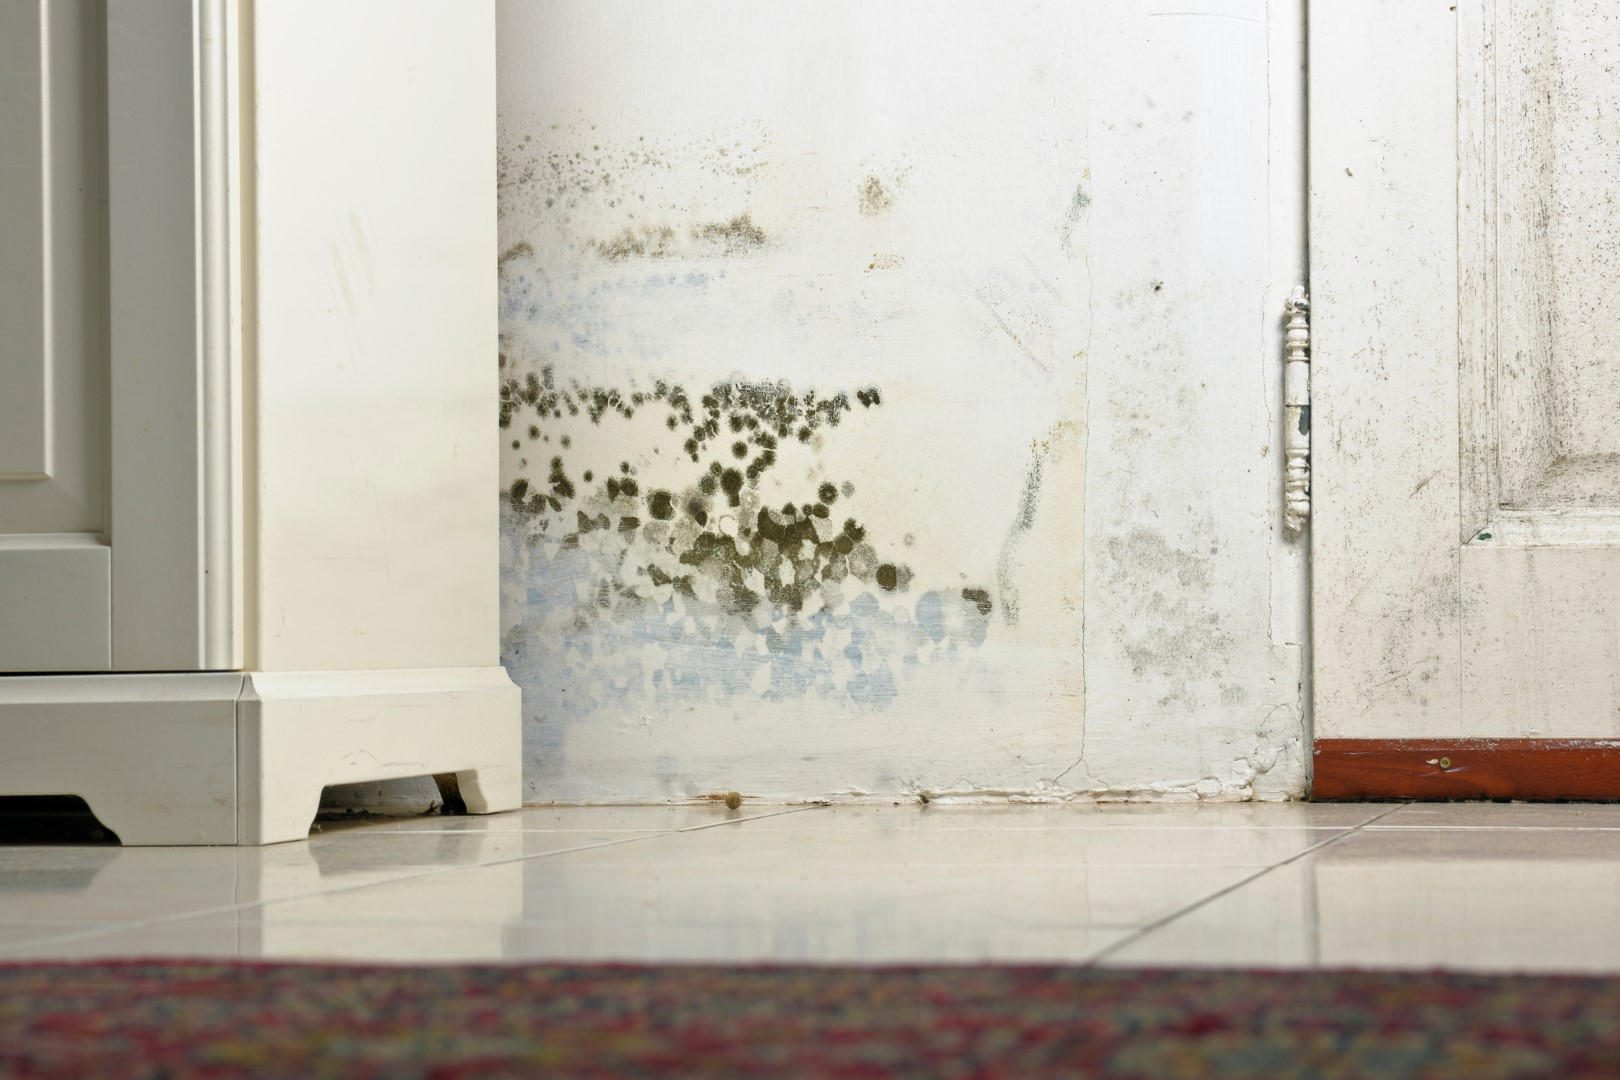 mould and stains on damp wall